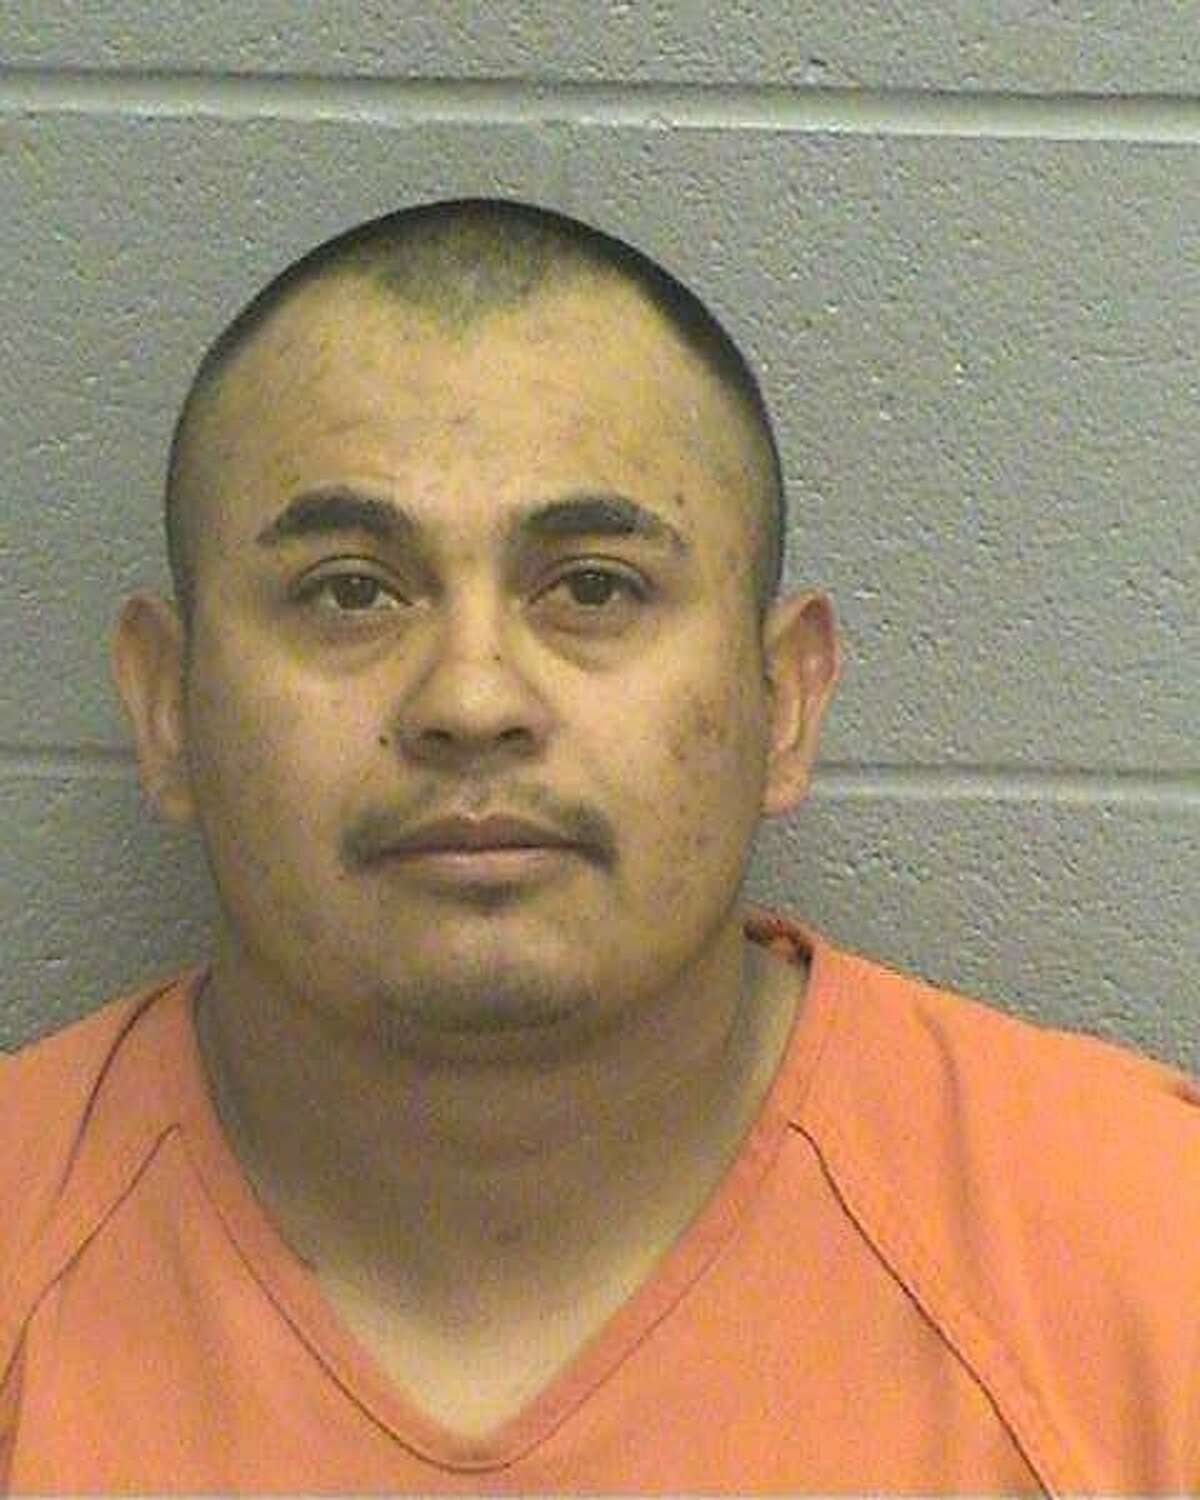 Urieal Atayde has been arrested by the Midland County Sheriff's Office as part of an alleged Texas cockfighting ring. (Source: Midland County Sheriff's Office)